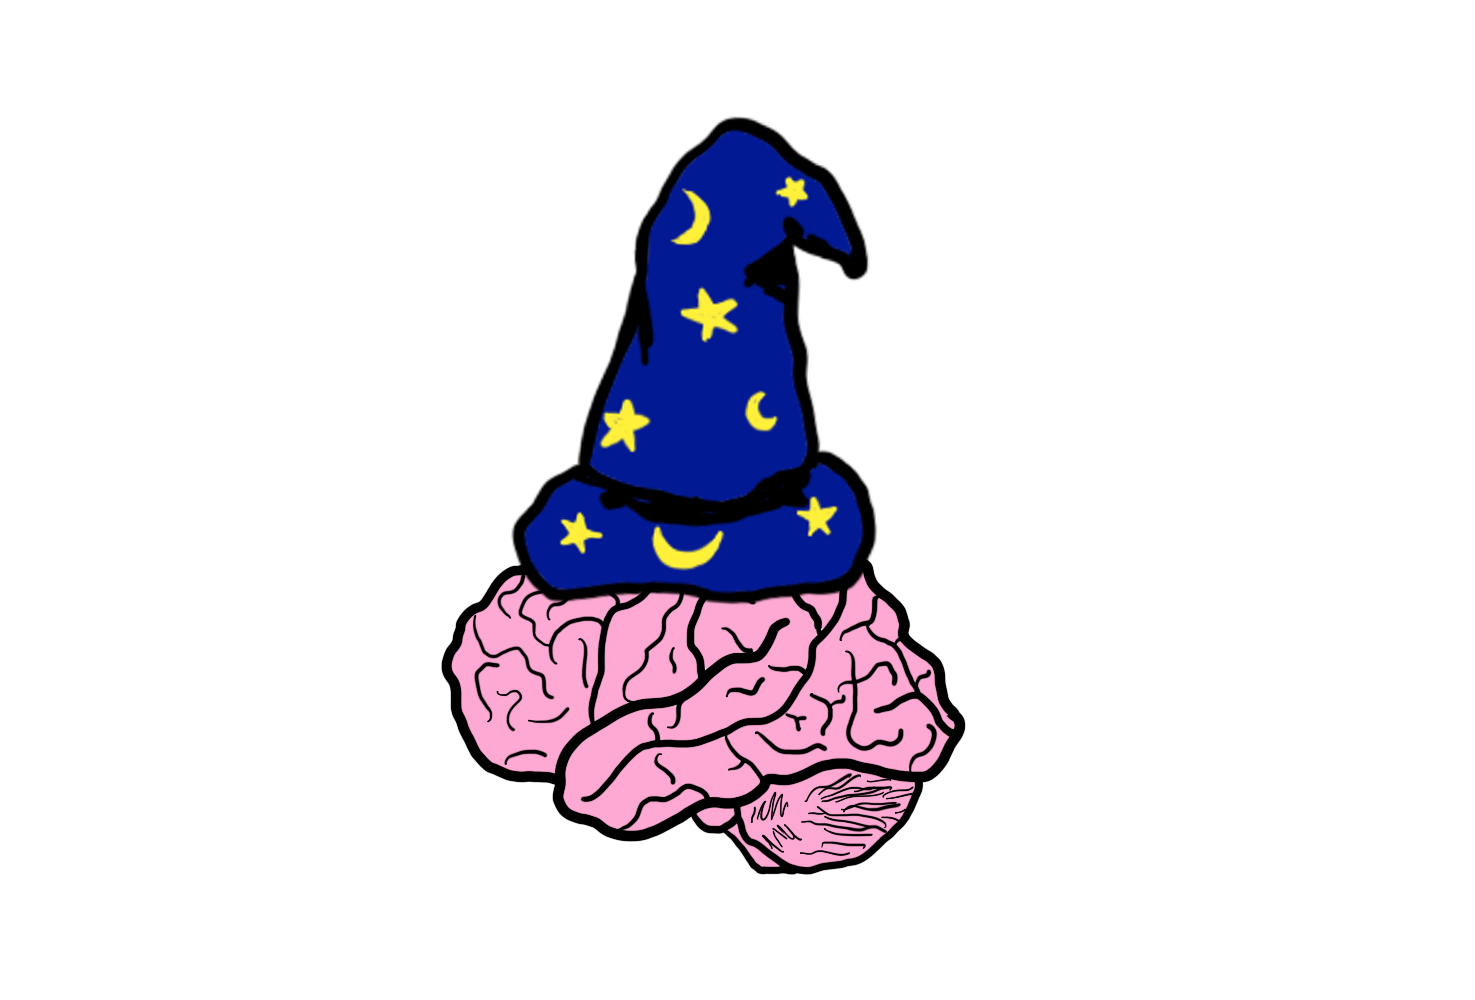 Short version of Neuralink (wizard hat for the brain) by Tim Urban. From http://waitbutwhy.com/2017/04/neuralink.html